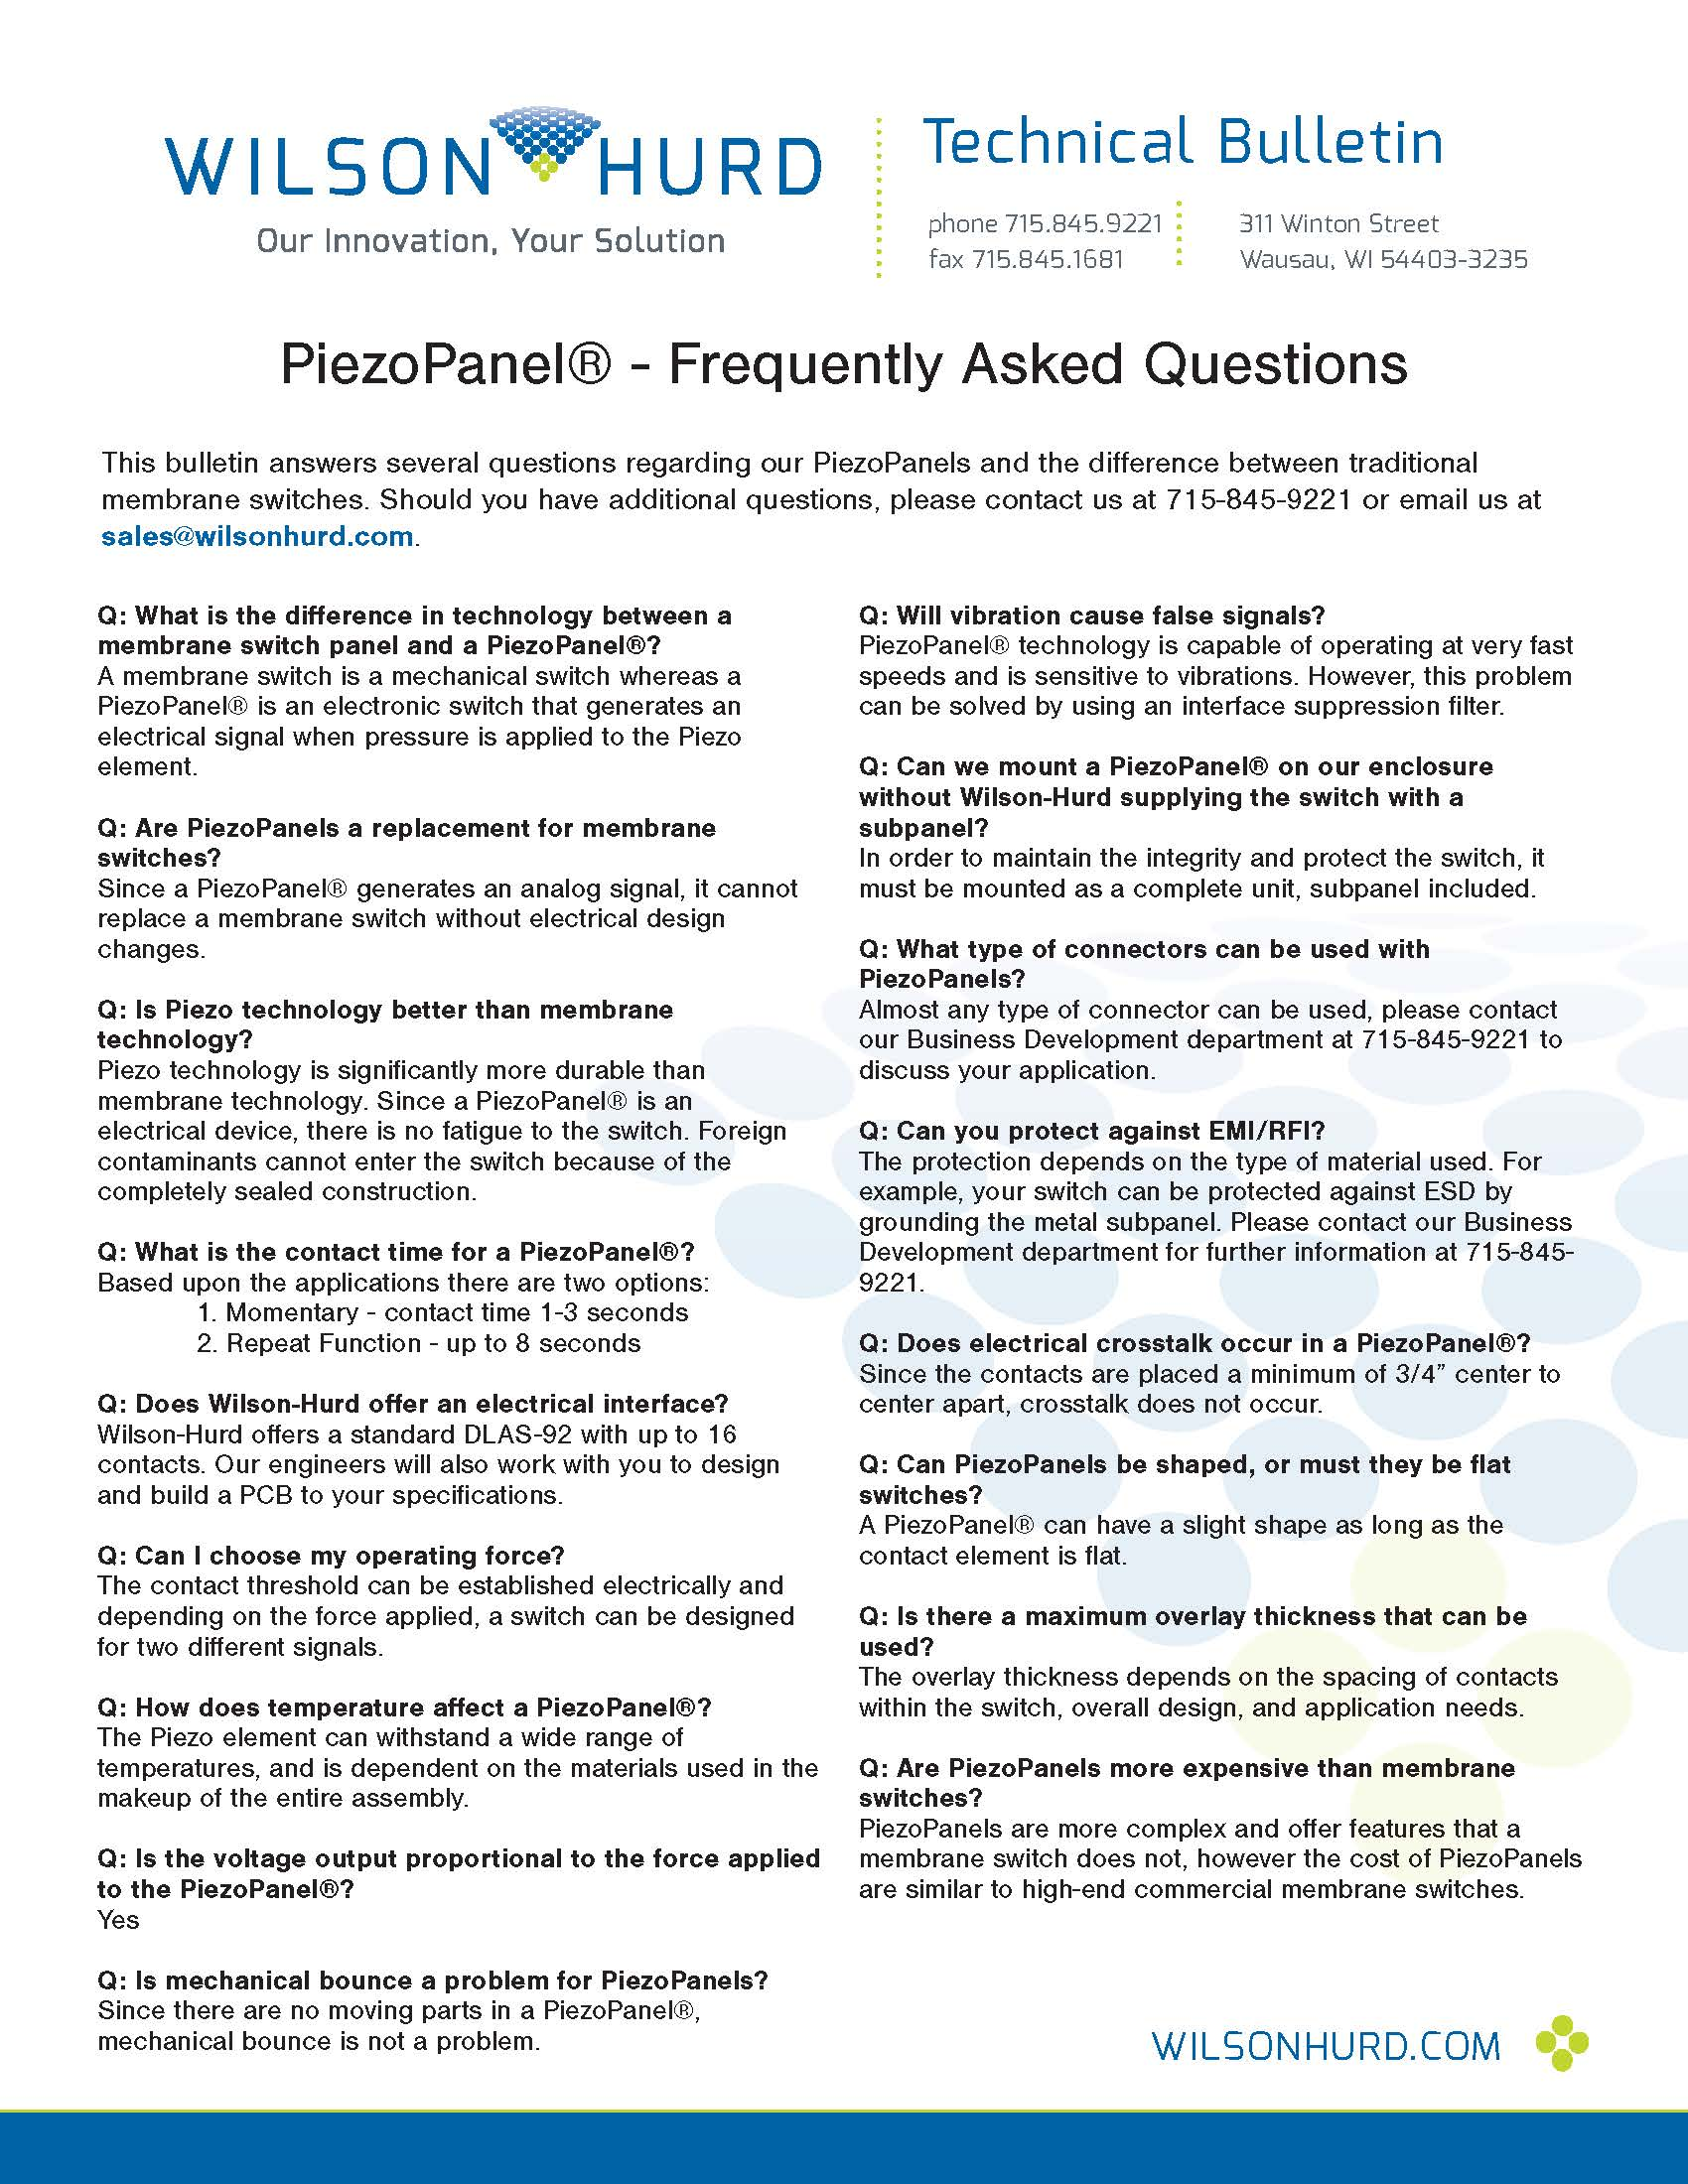 PiezoPanel - Frequently Asked Questions